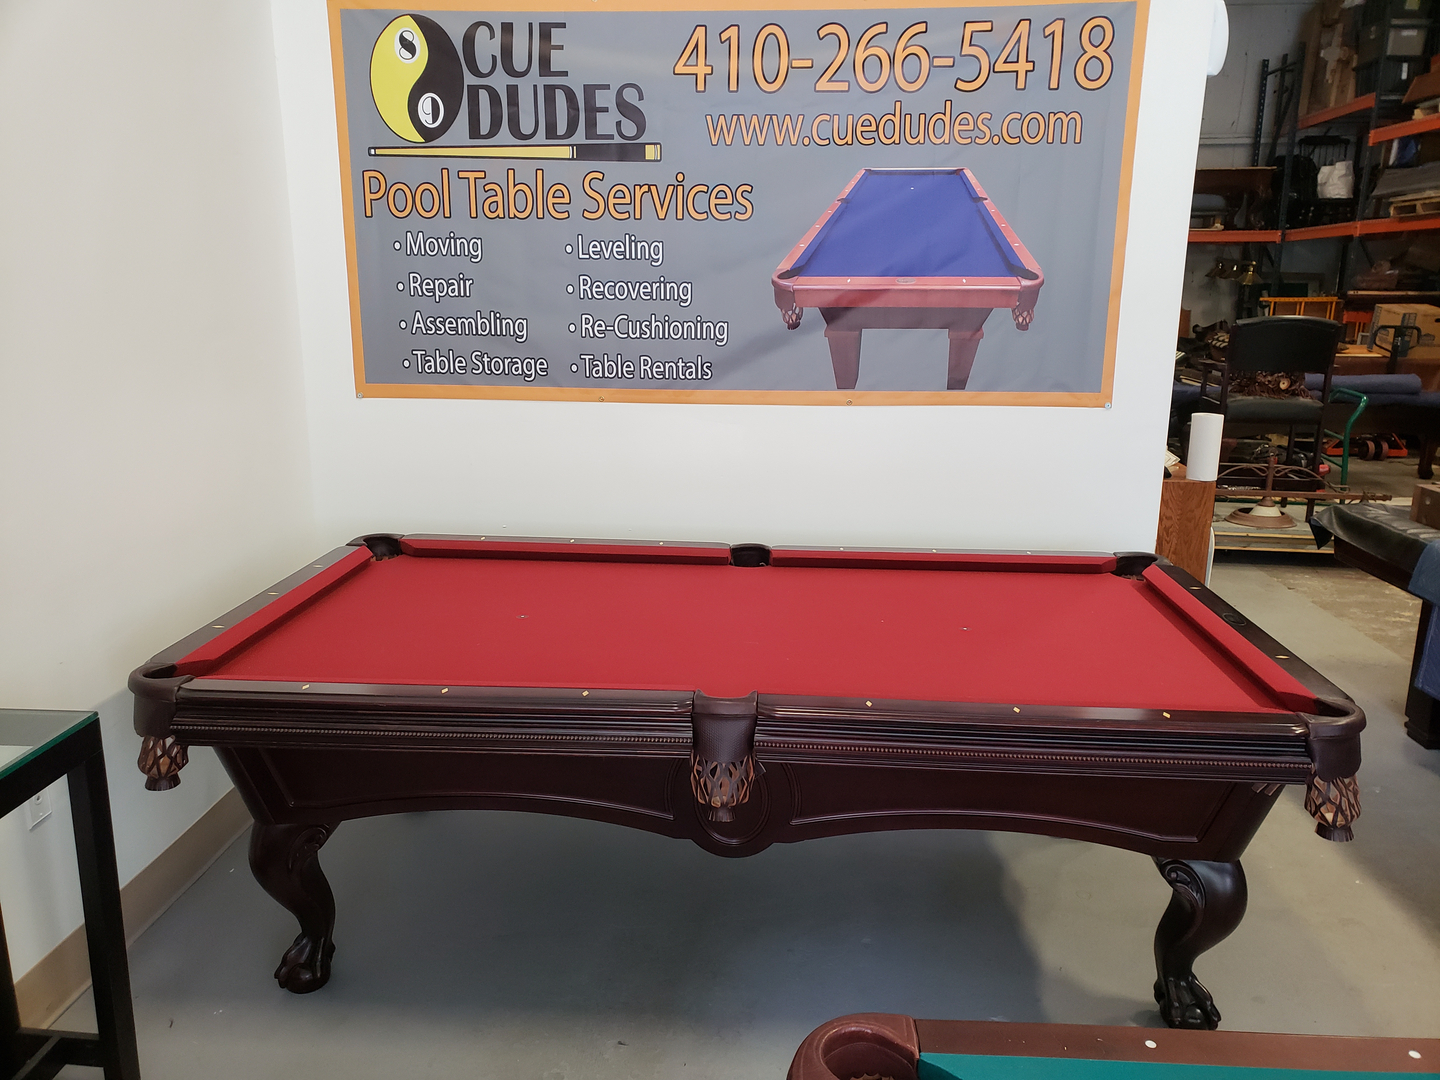 Refurbished Tables - Pool table leveling system